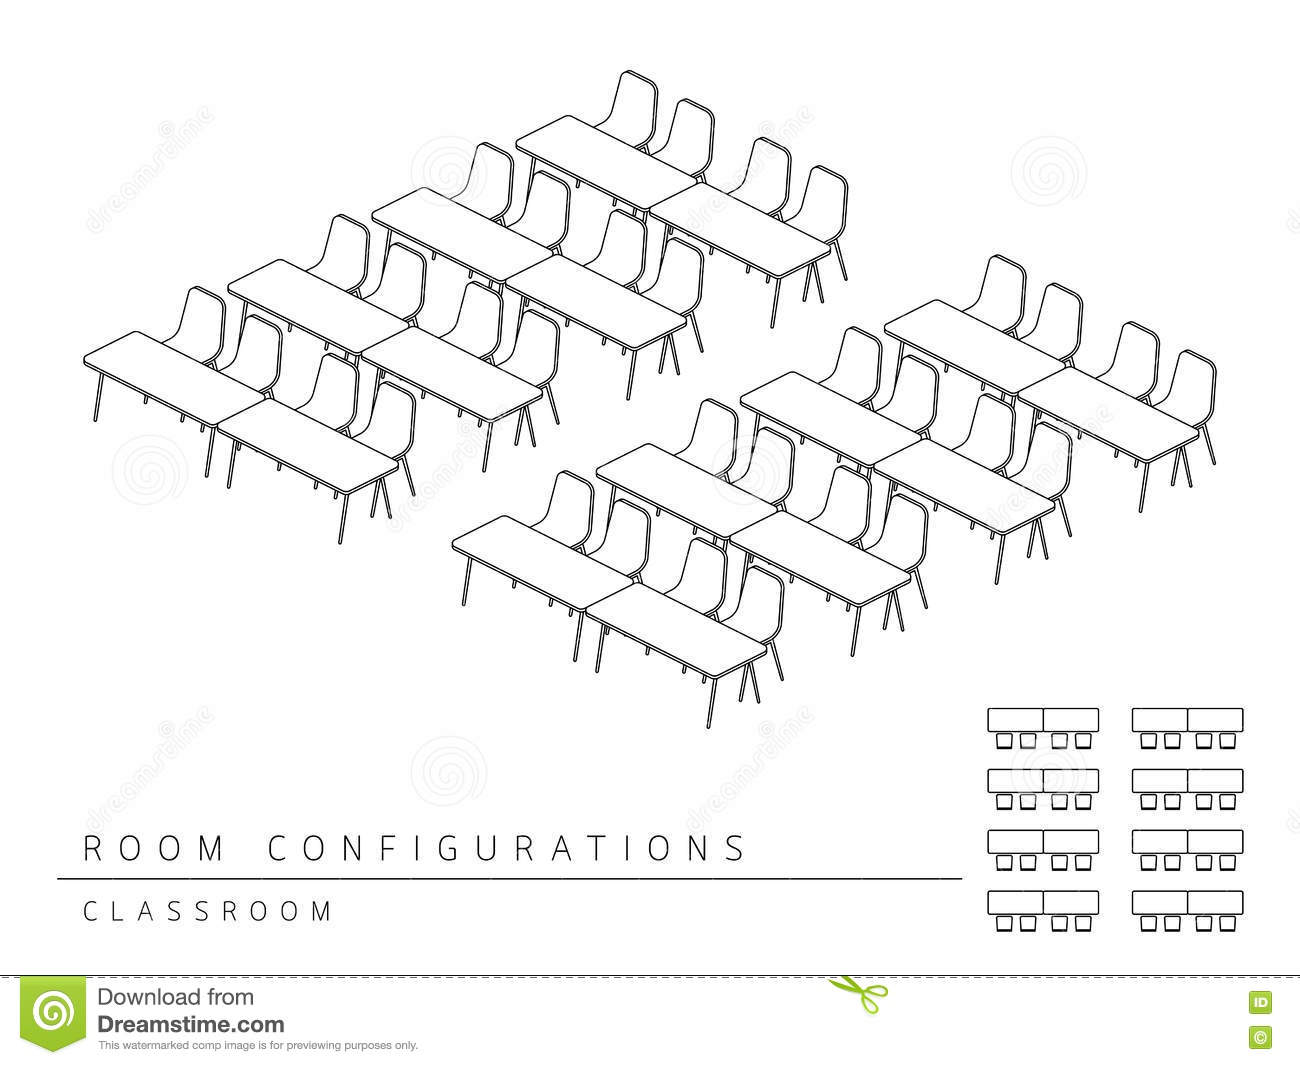 Meeting Room Setup Layout Configuration Classroom Style